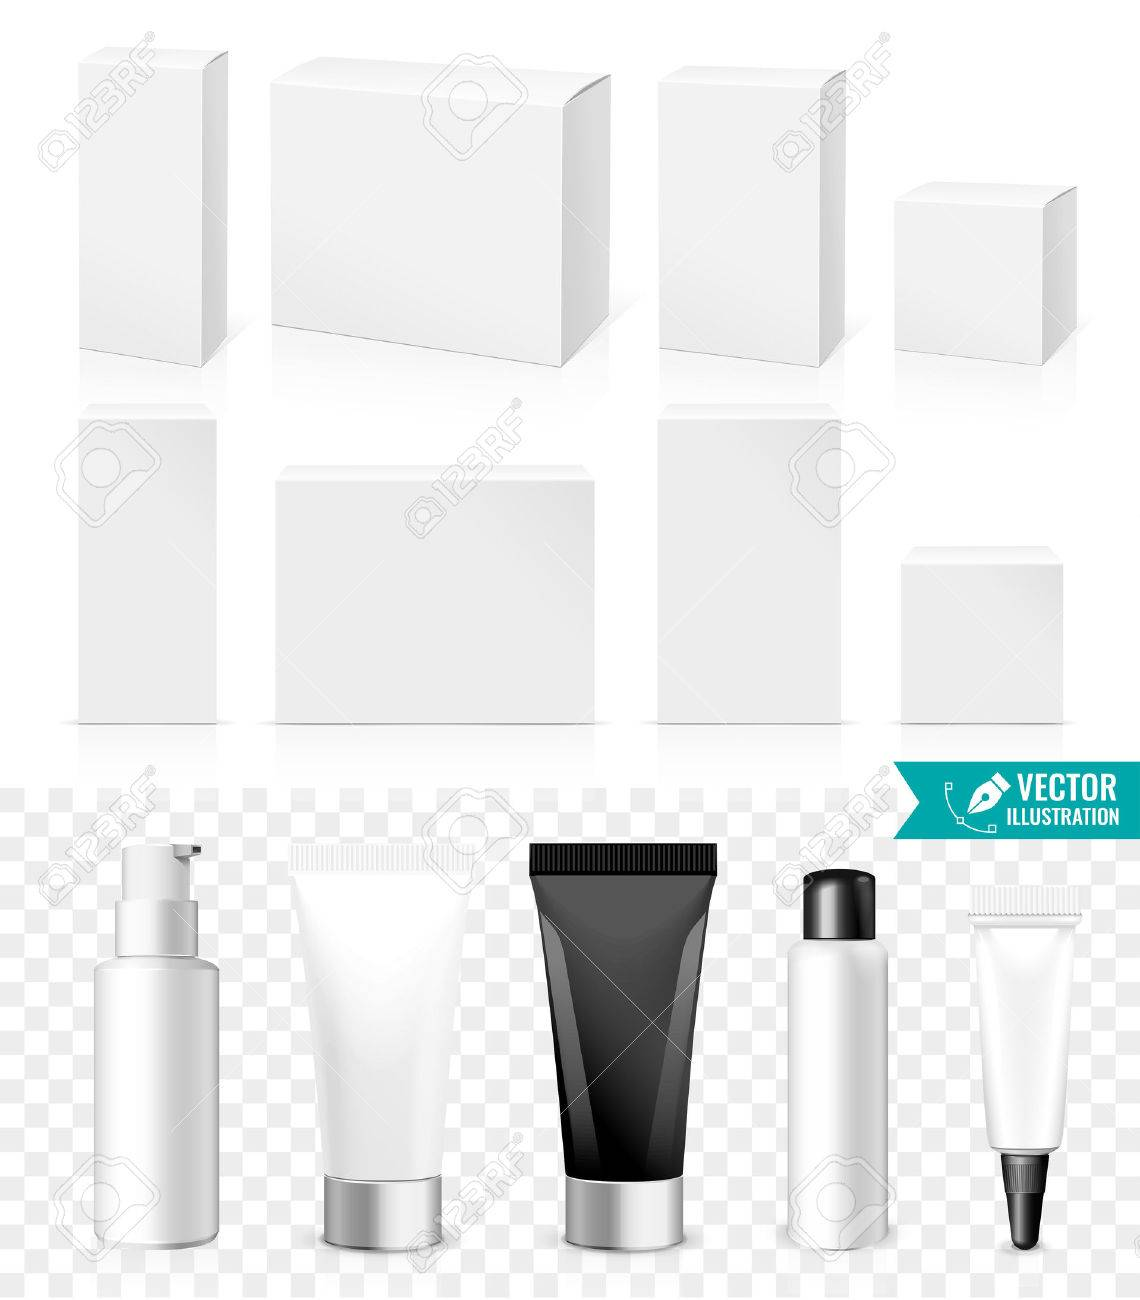 Realistic Tubes And Boxes. Packing White Cosmetics Or Medicines products Isolated On White Background. You Can Use It For Tube Of Creams, Shampoo, Gel, Ointments Or Any Other Product for you design - 50264536